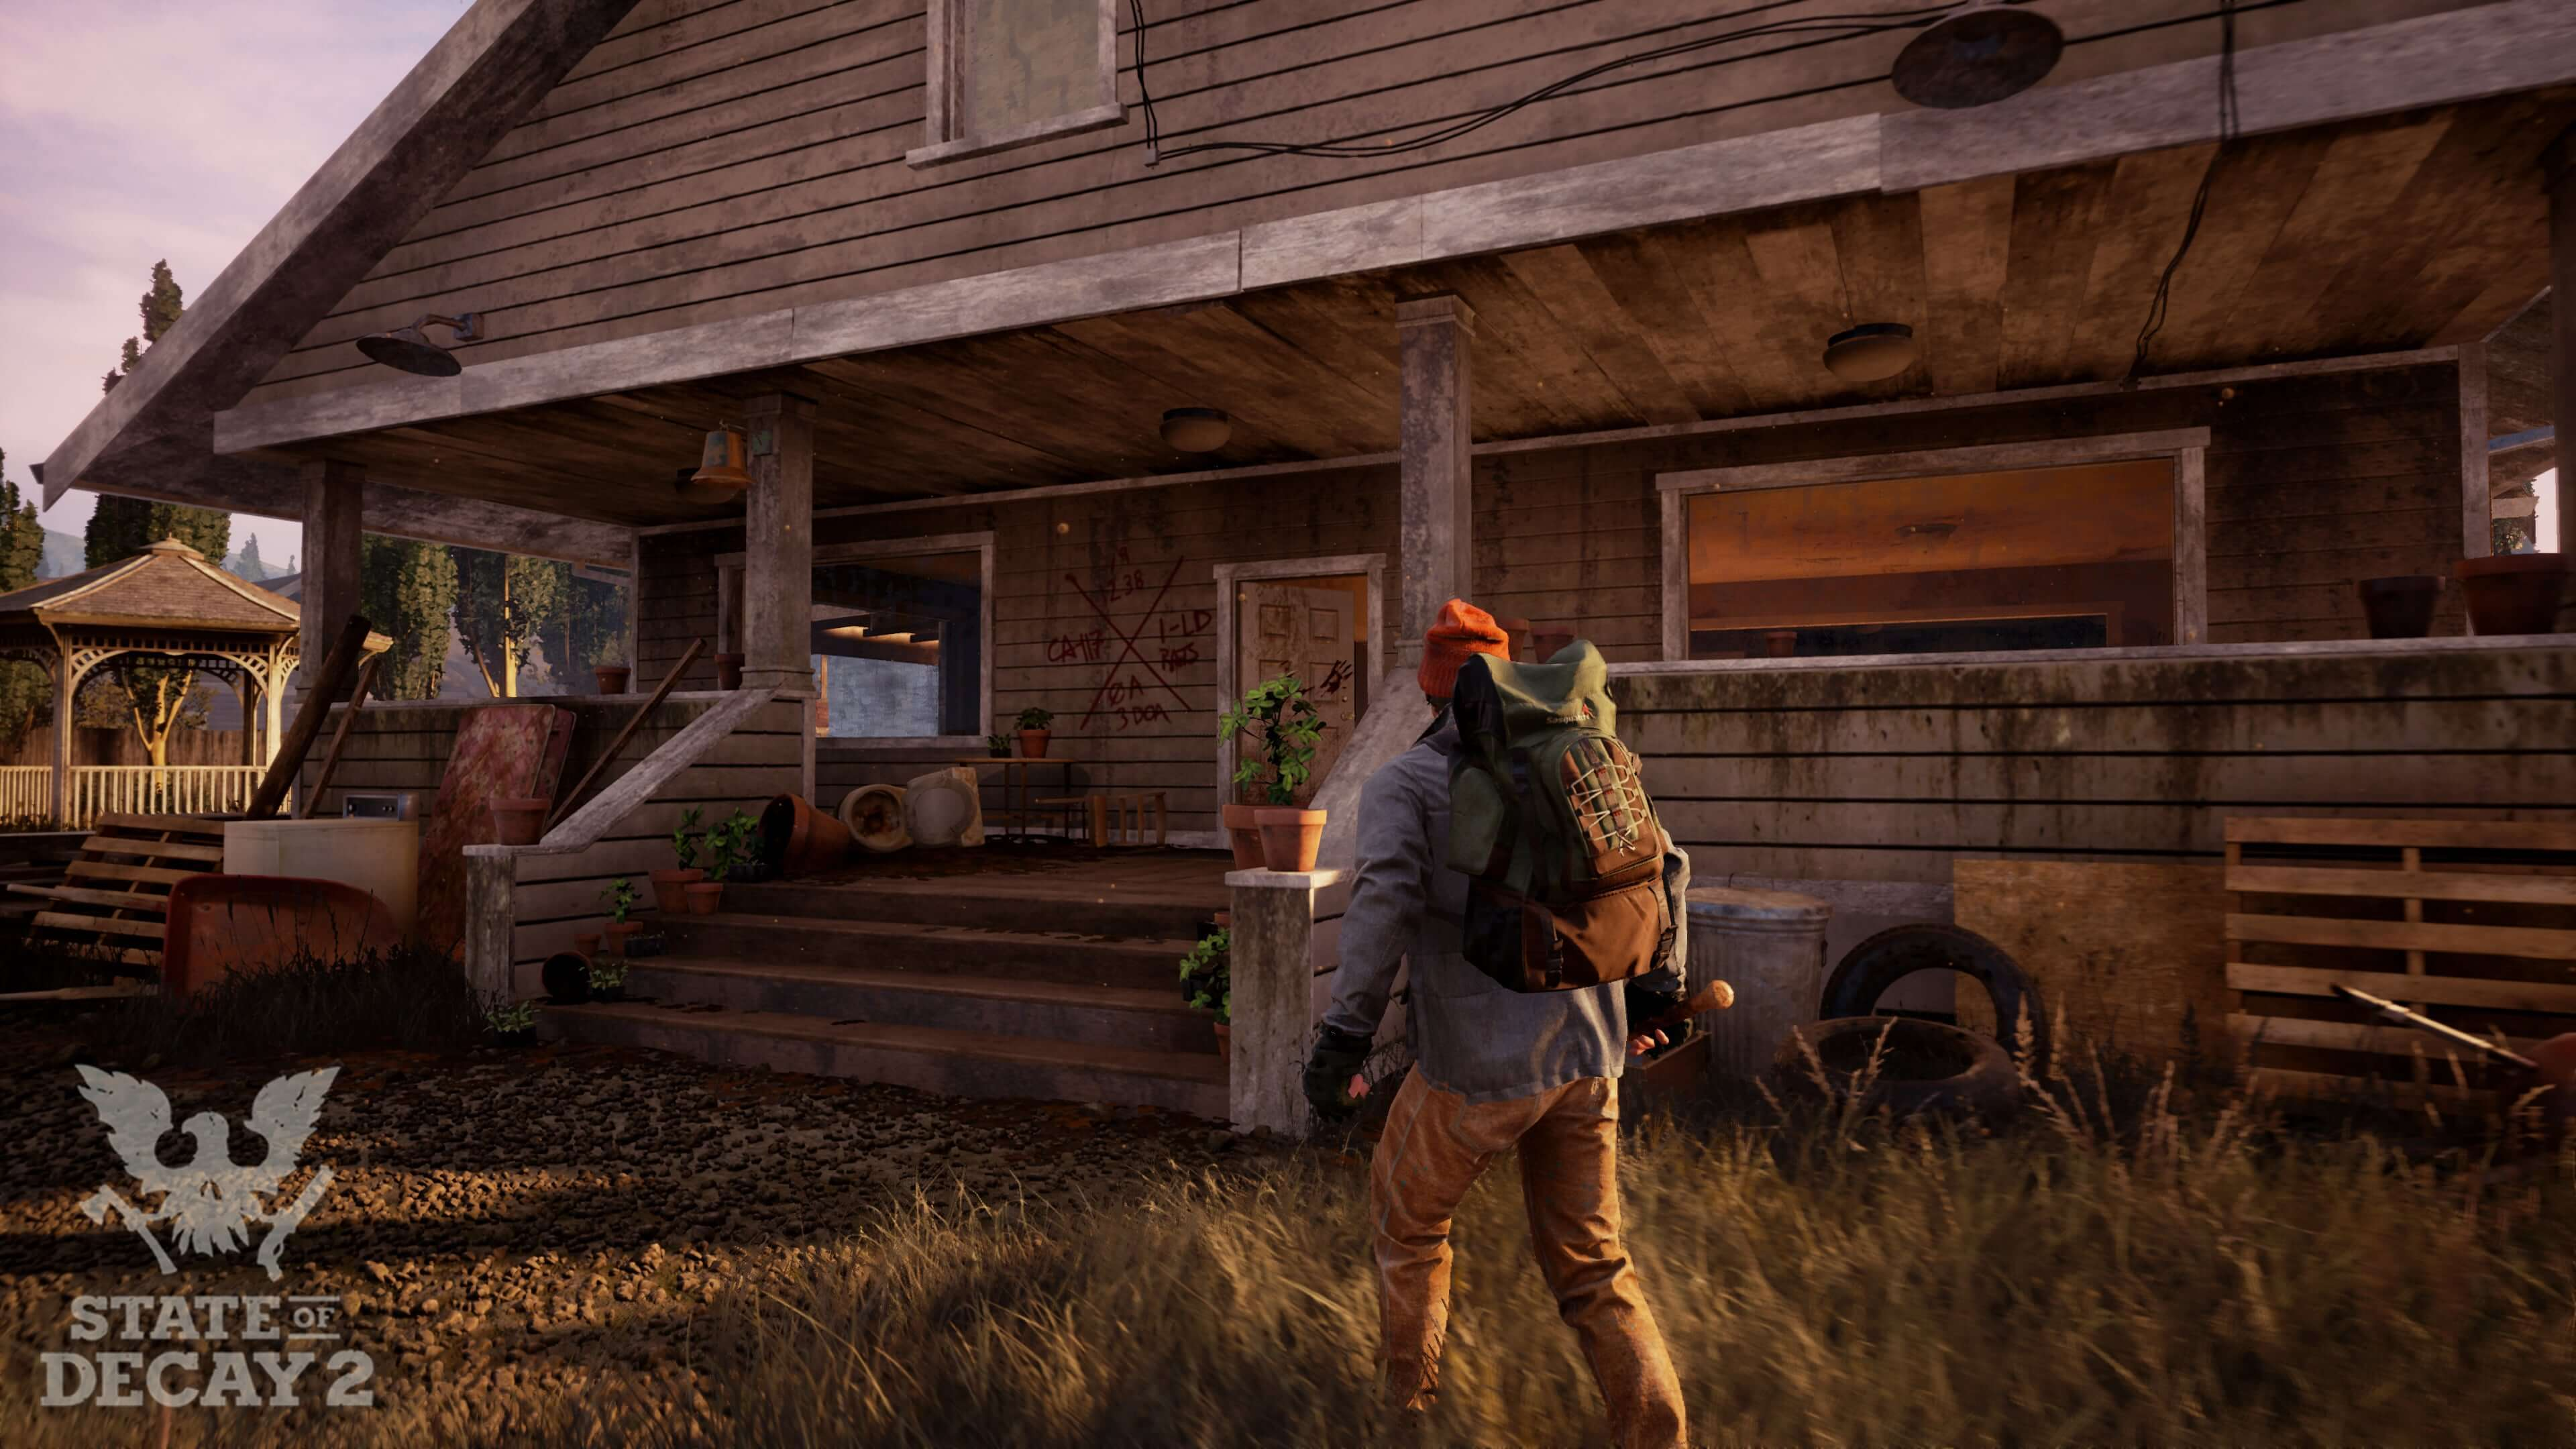 State of Decay 2: 16 Advanced Tips To Help You Beat The Campaign